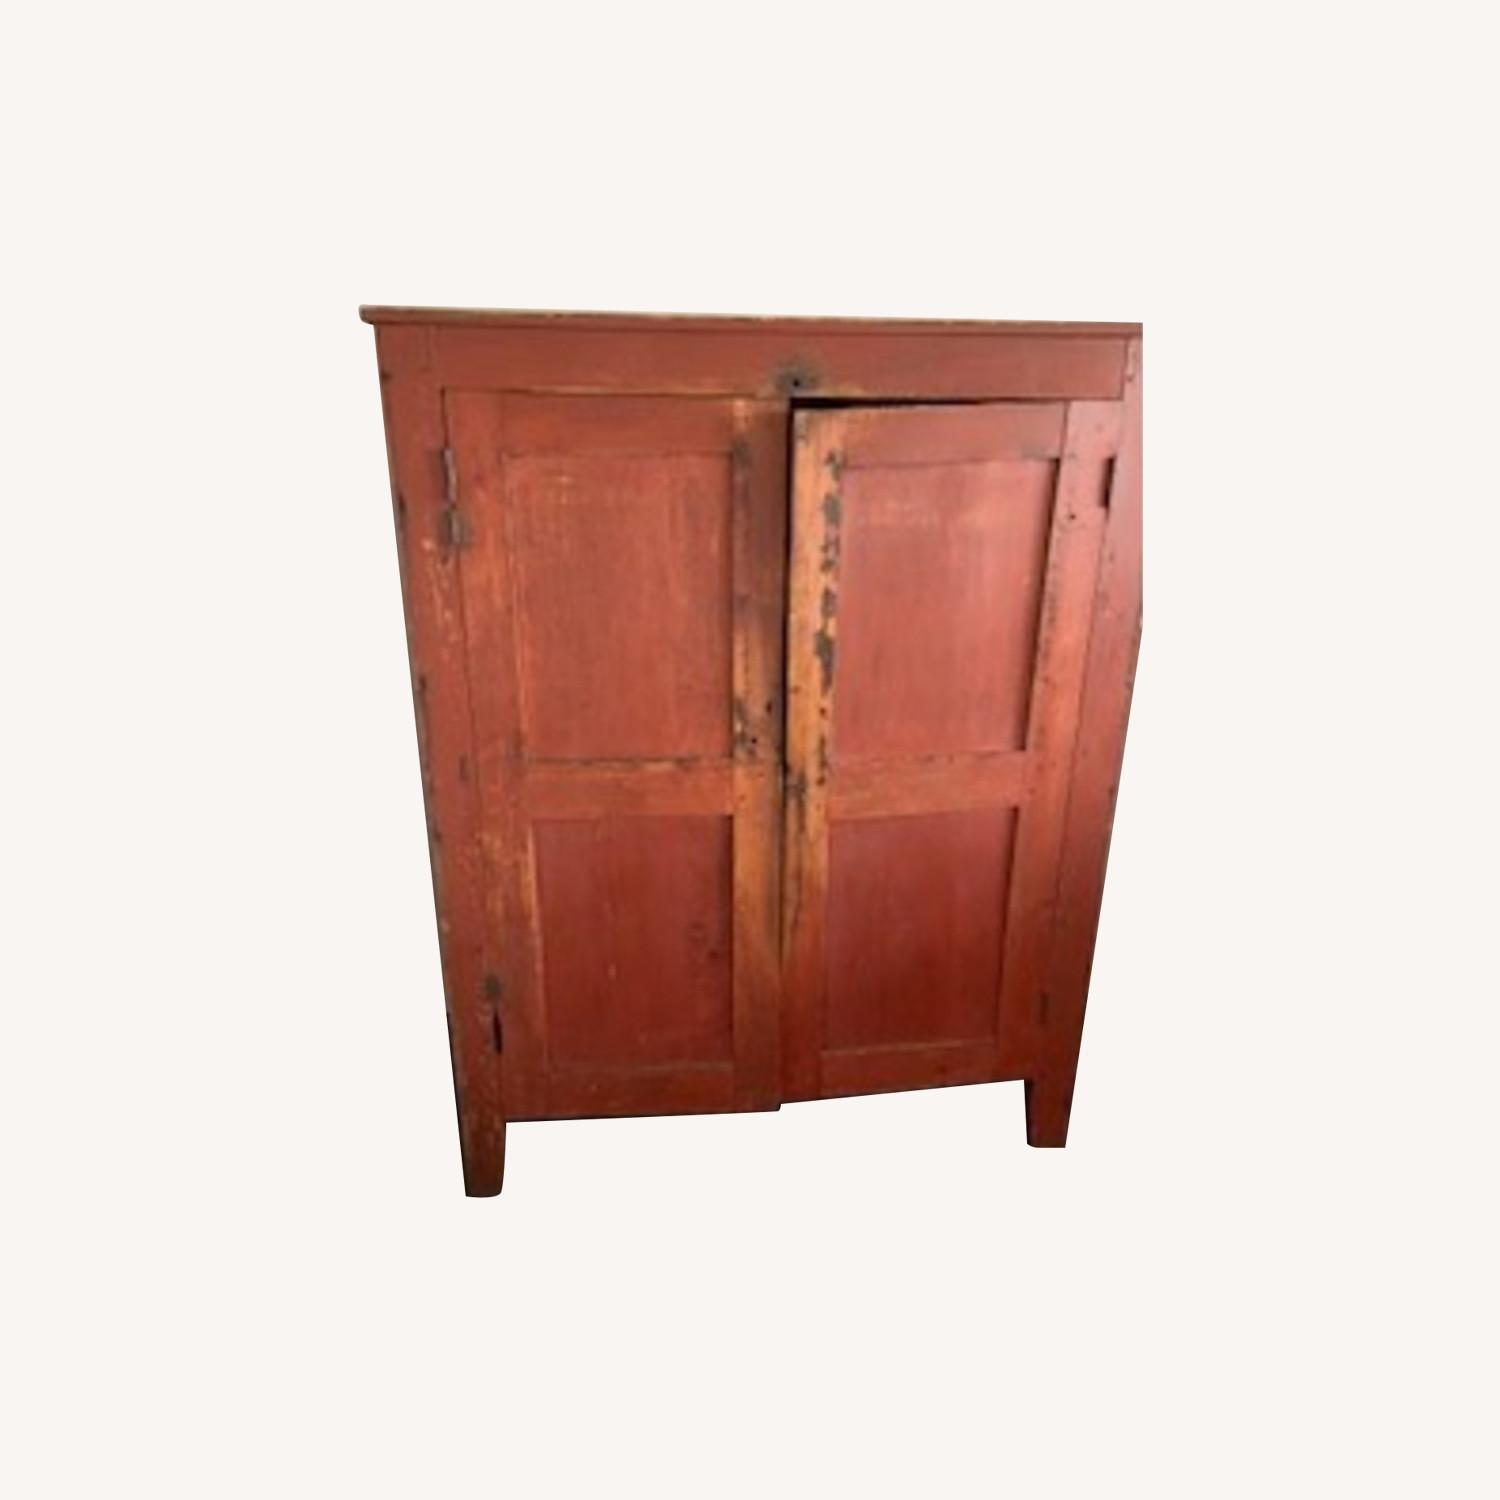 Country Farm armoire or cupboard